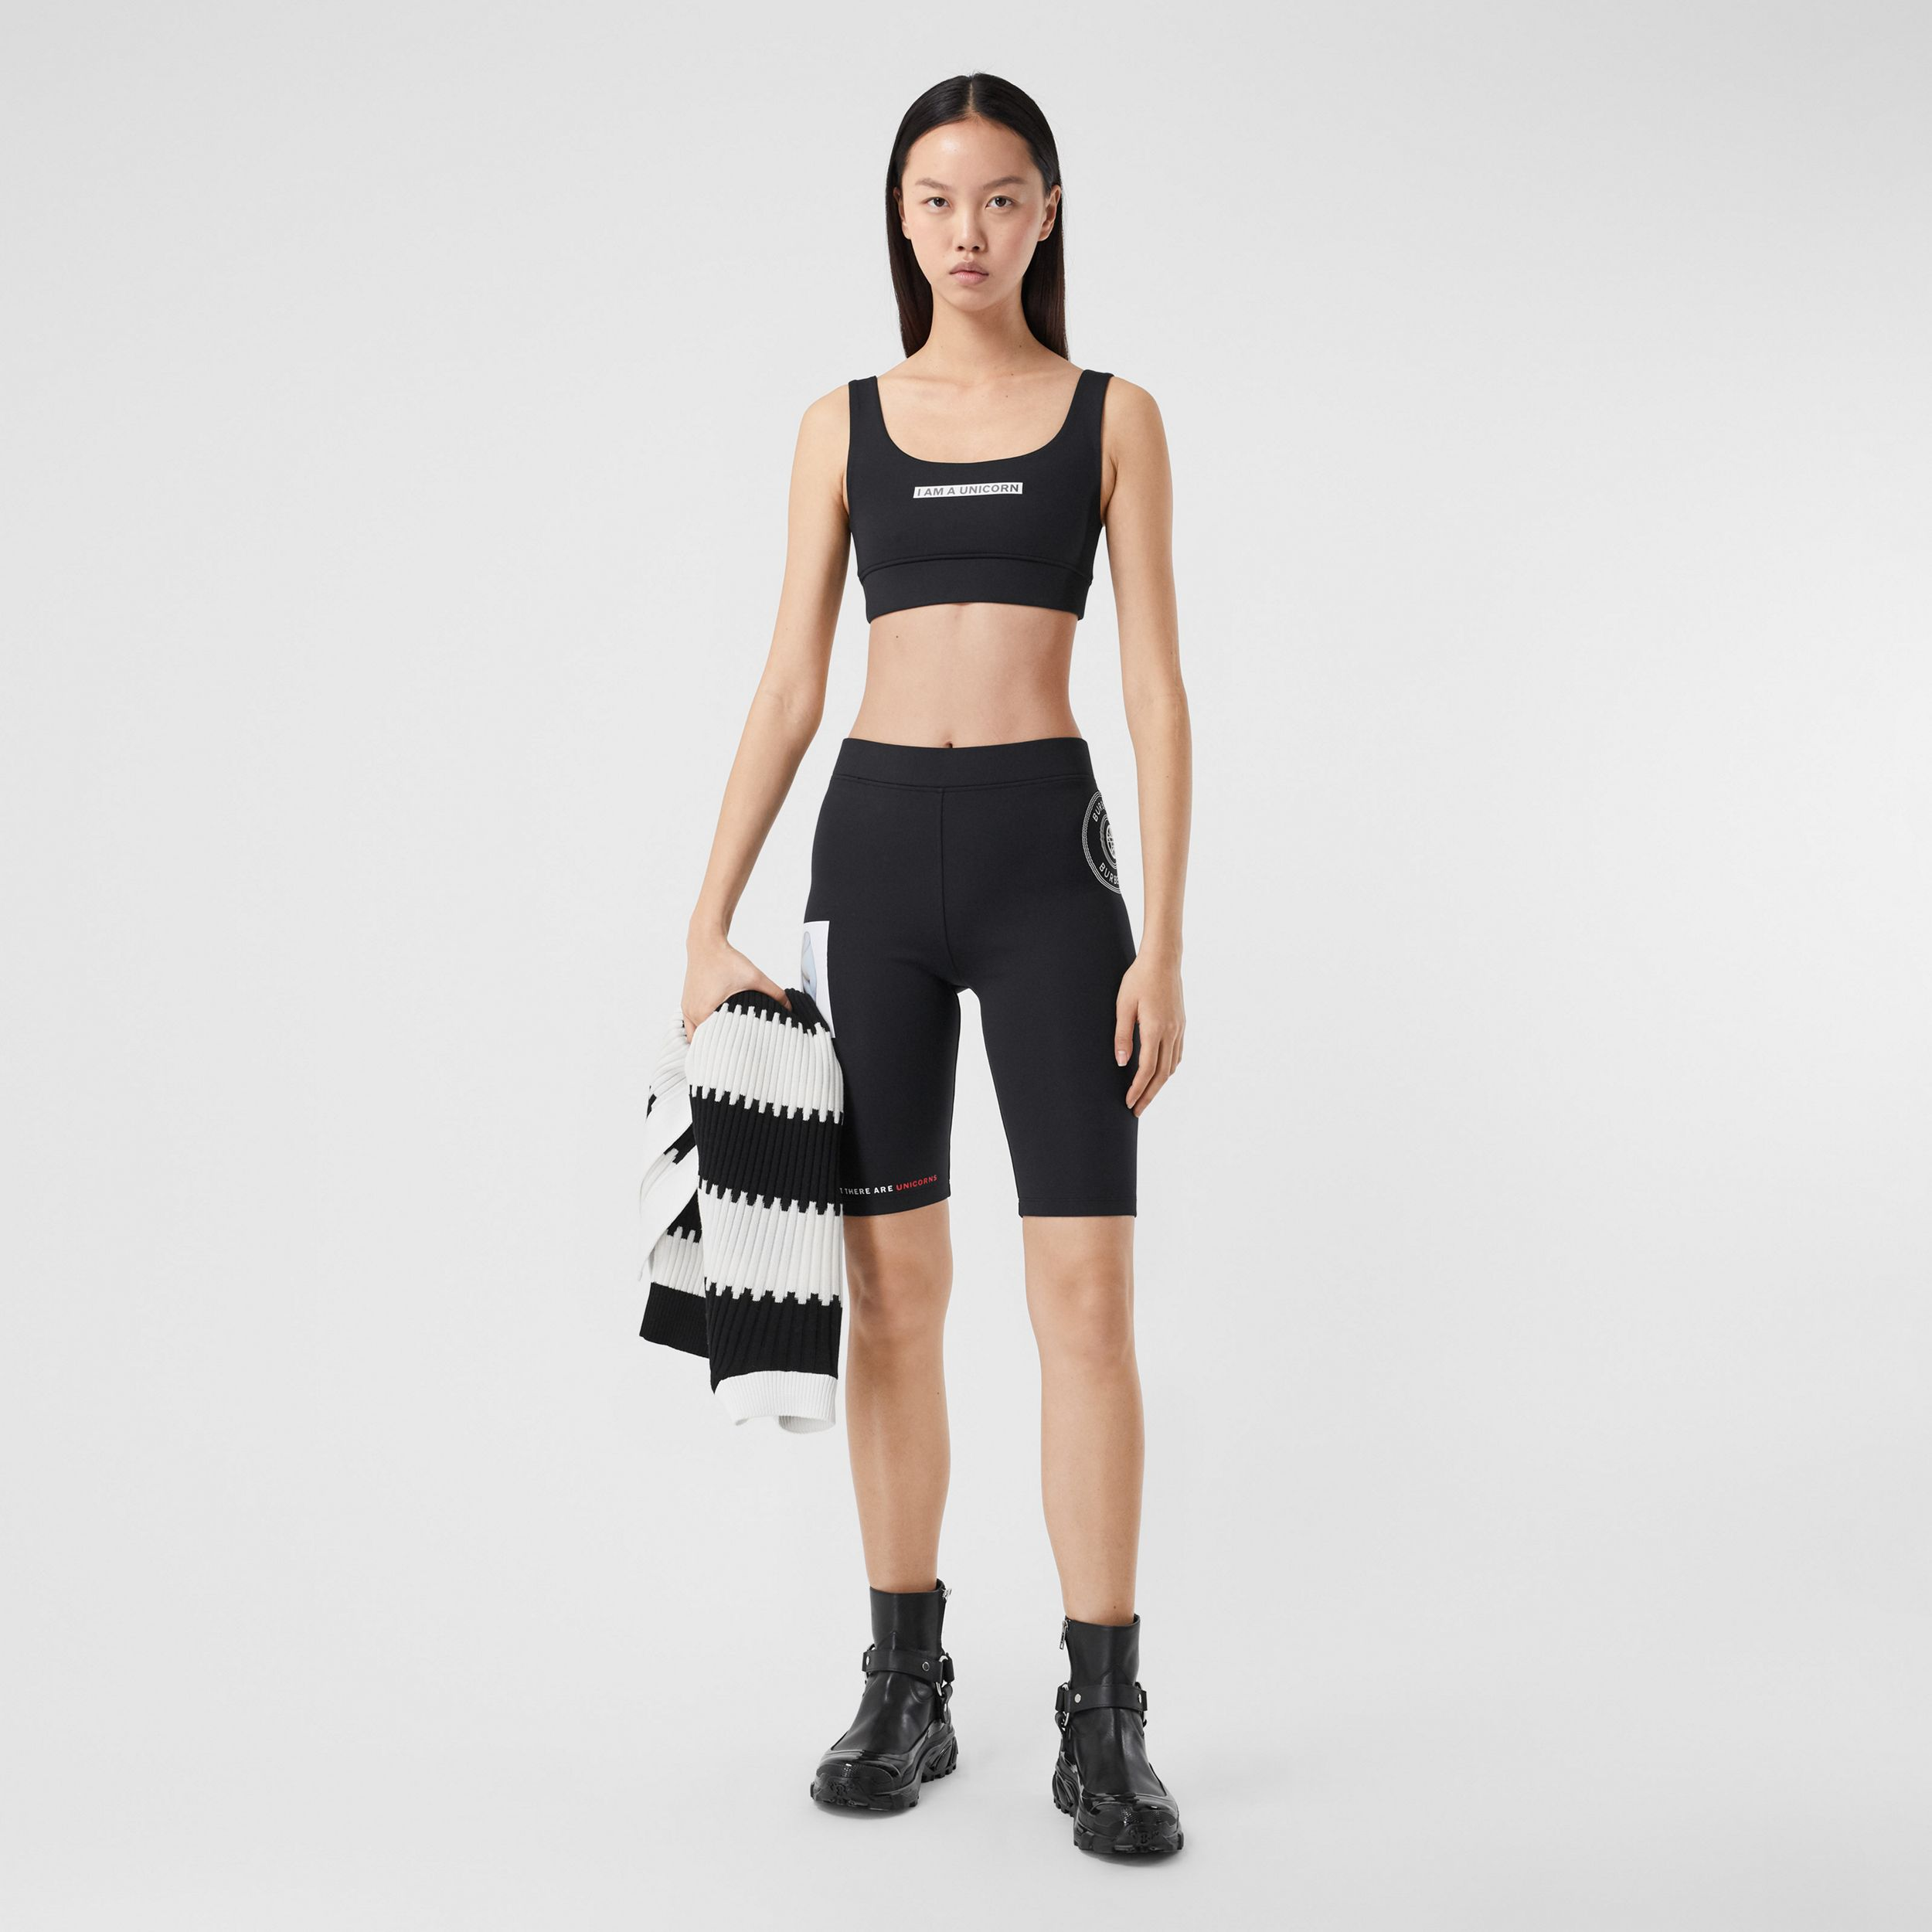 Slogan Print Stretch Jersey Bra Top in Black - Women | Burberry Hong Kong S.A.R. - 1